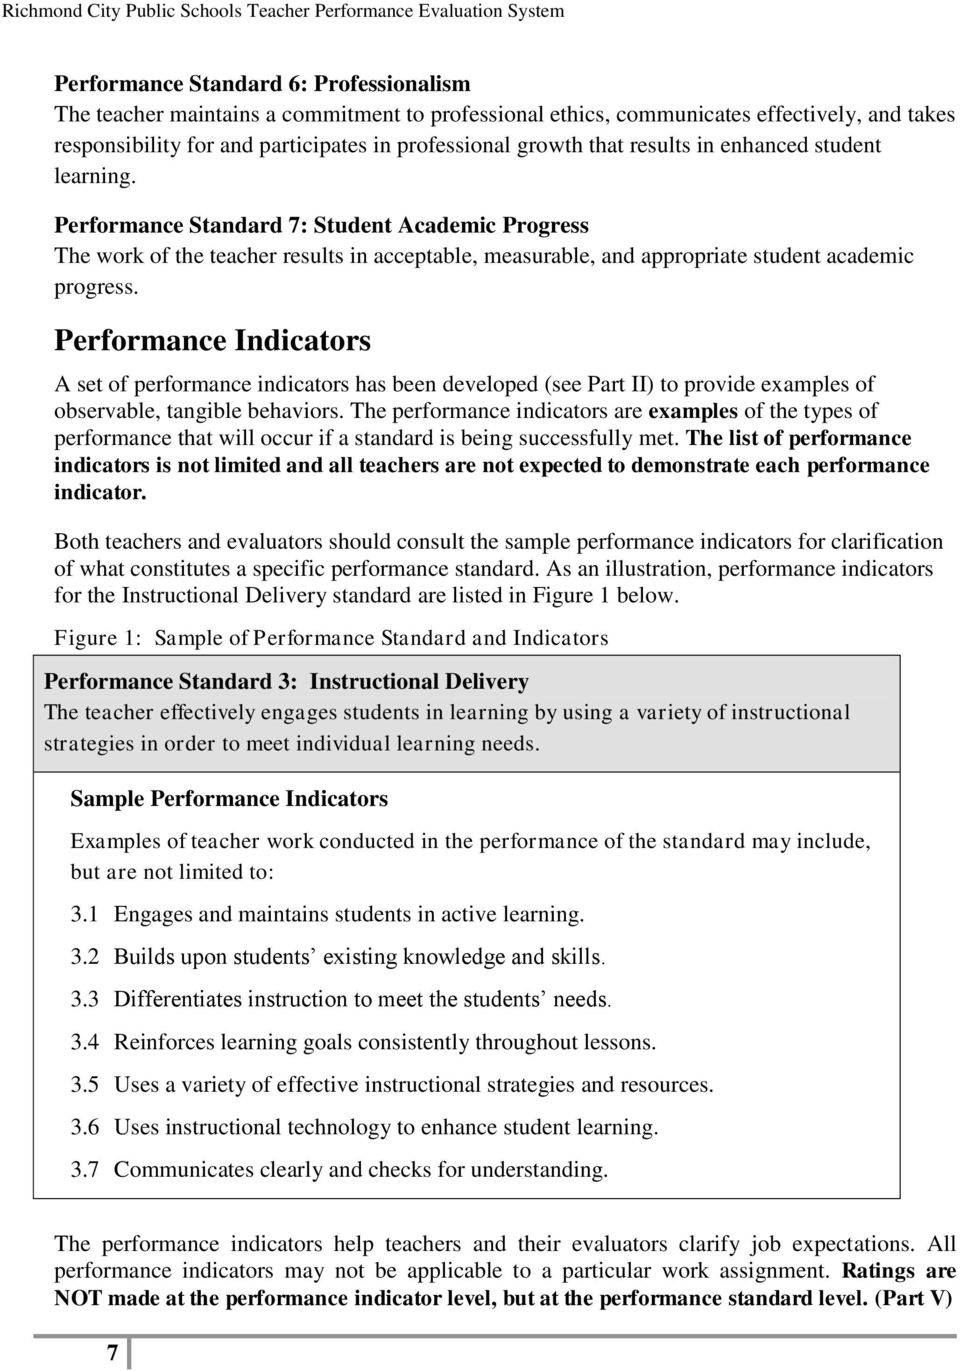 Performance Standard 7: Student Academic Progress The work of the teacher results in acceptable, measurable, and appropriate student academic progress.